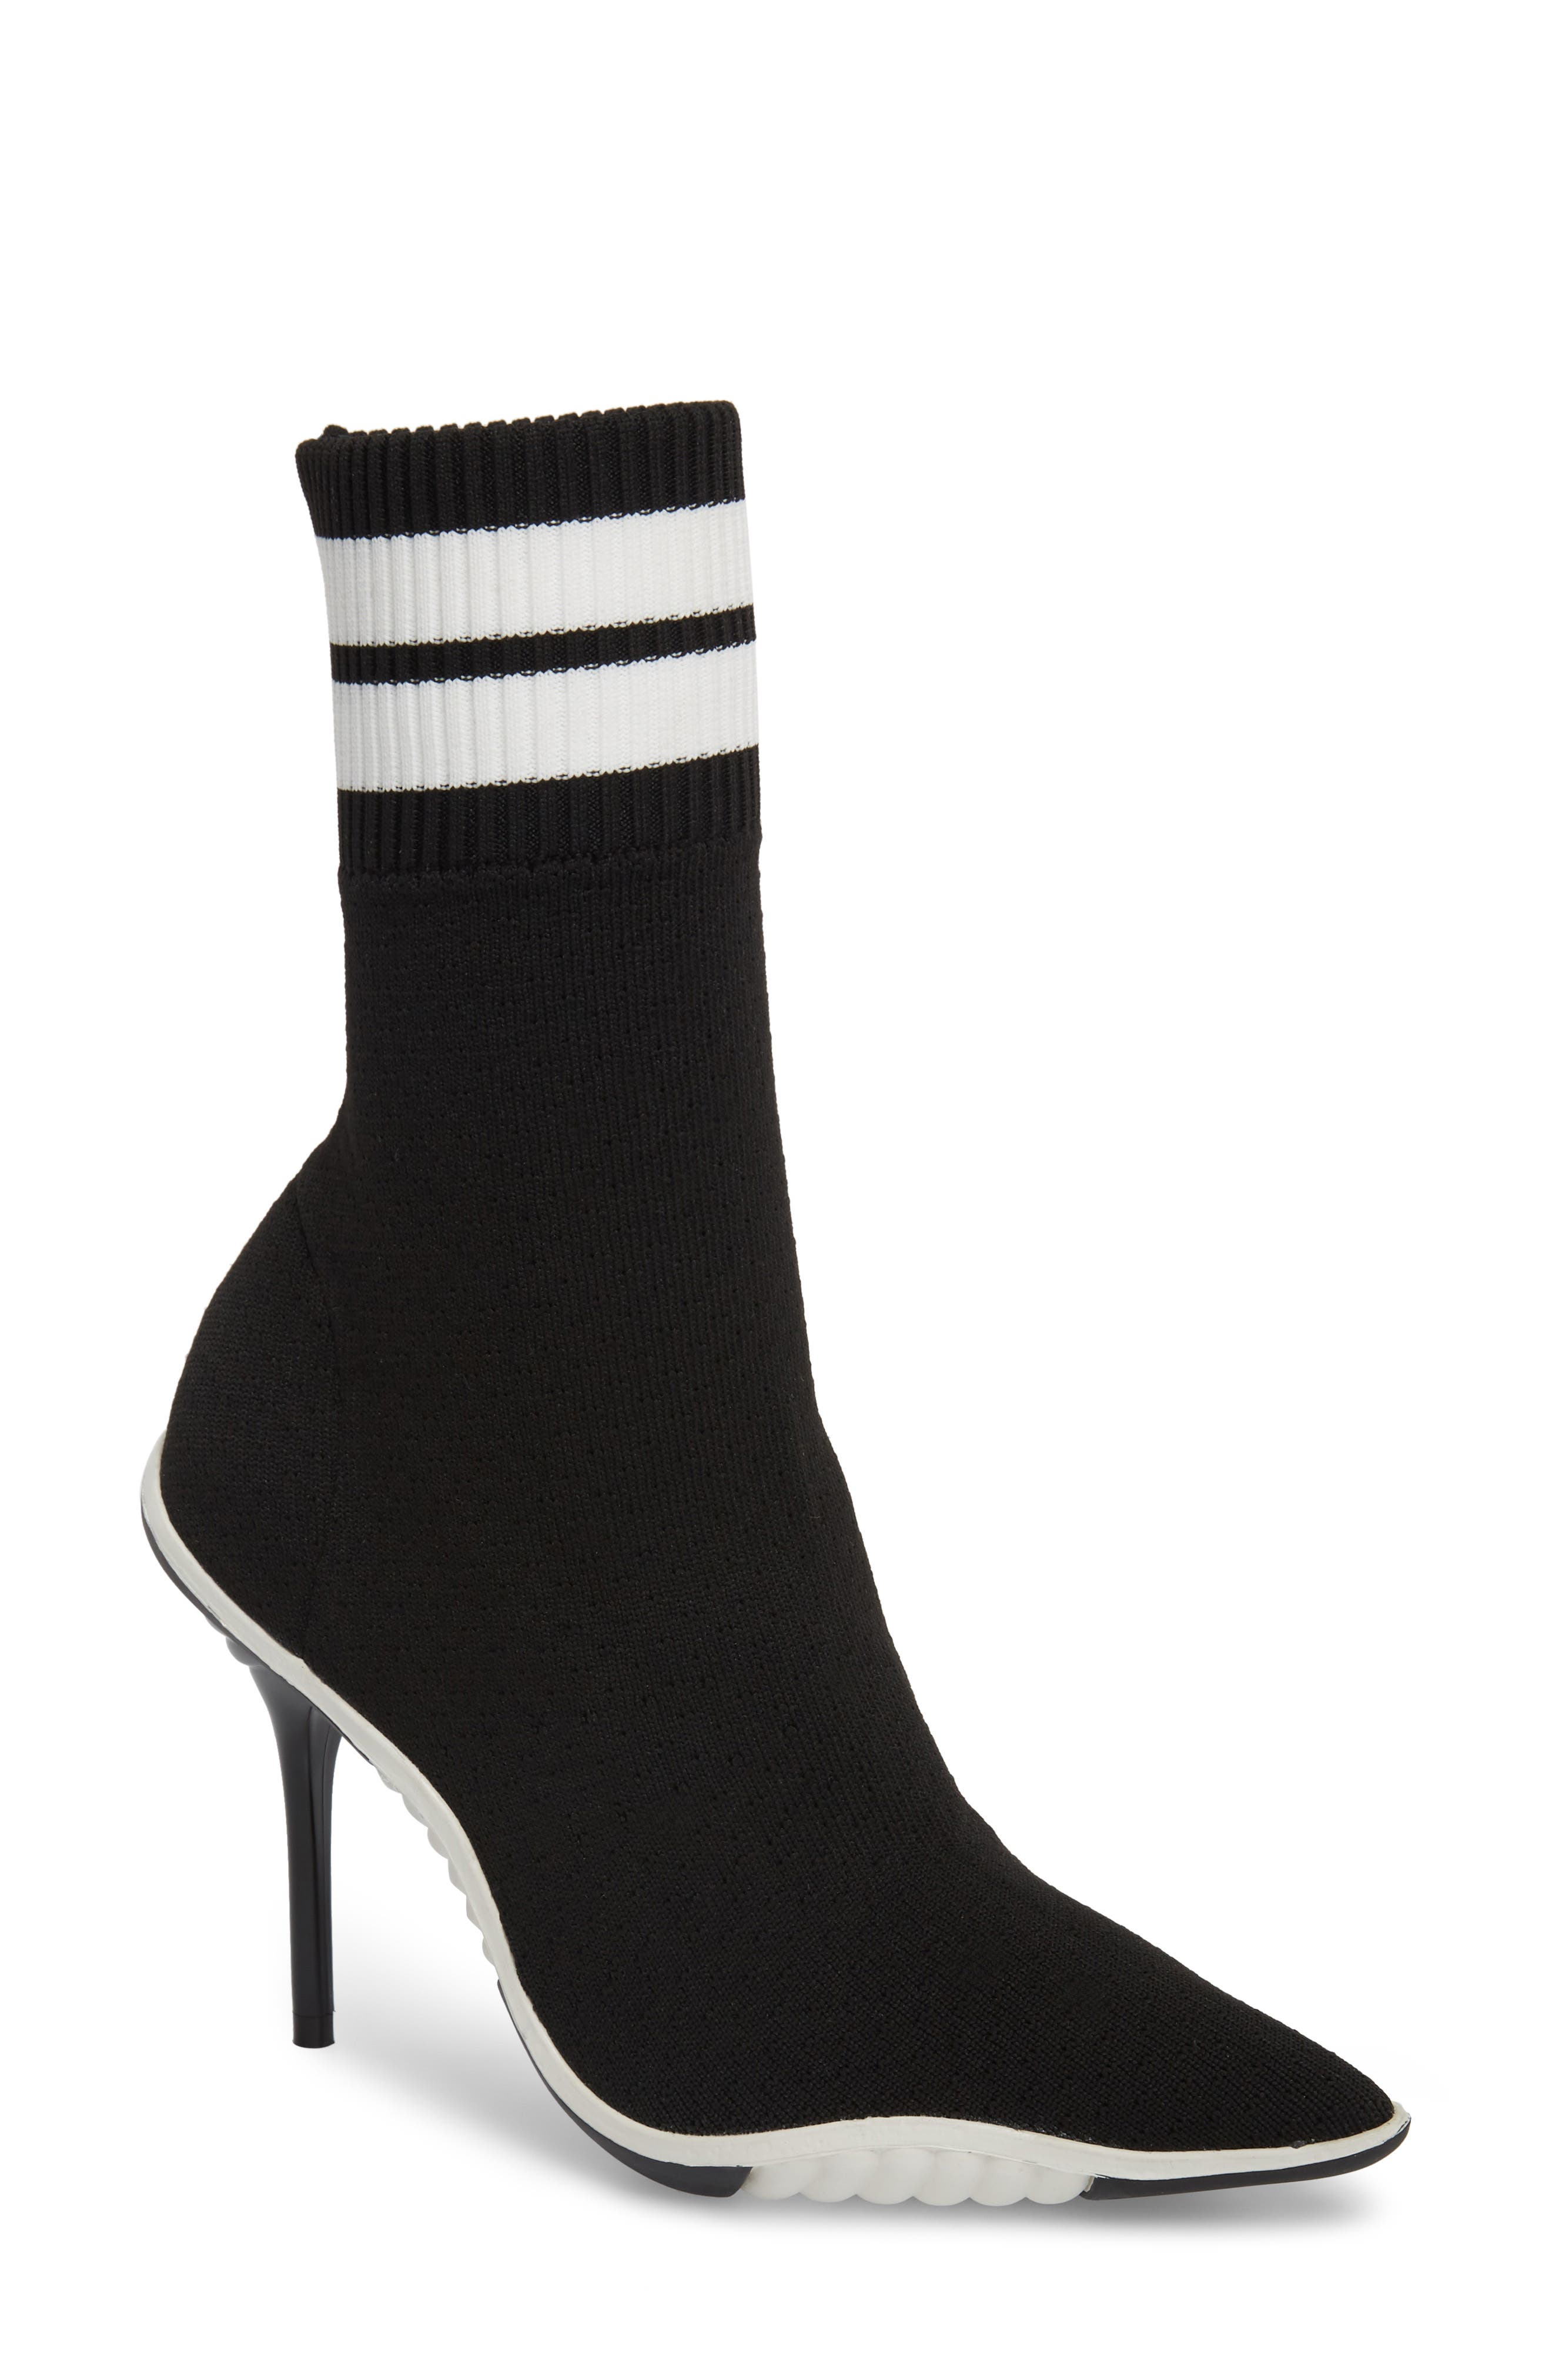 JEFFREY CAMPBELL Goal Sock Sneaker Bootie, Main, color, BLACK/ WHITE FABRIC